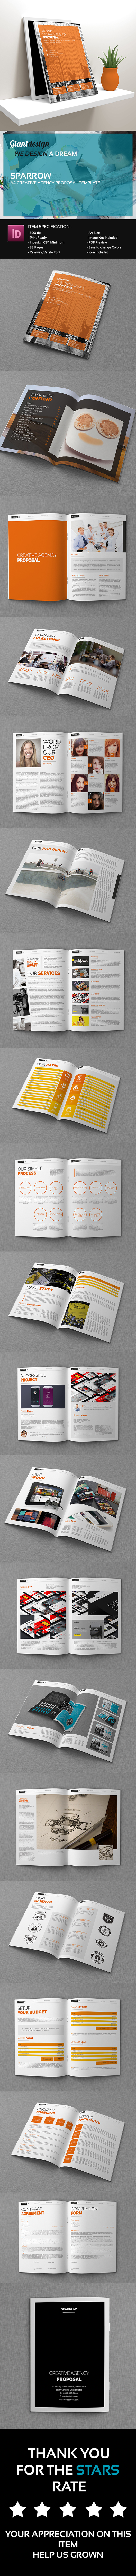 sparrow creative agency proposal template on behance